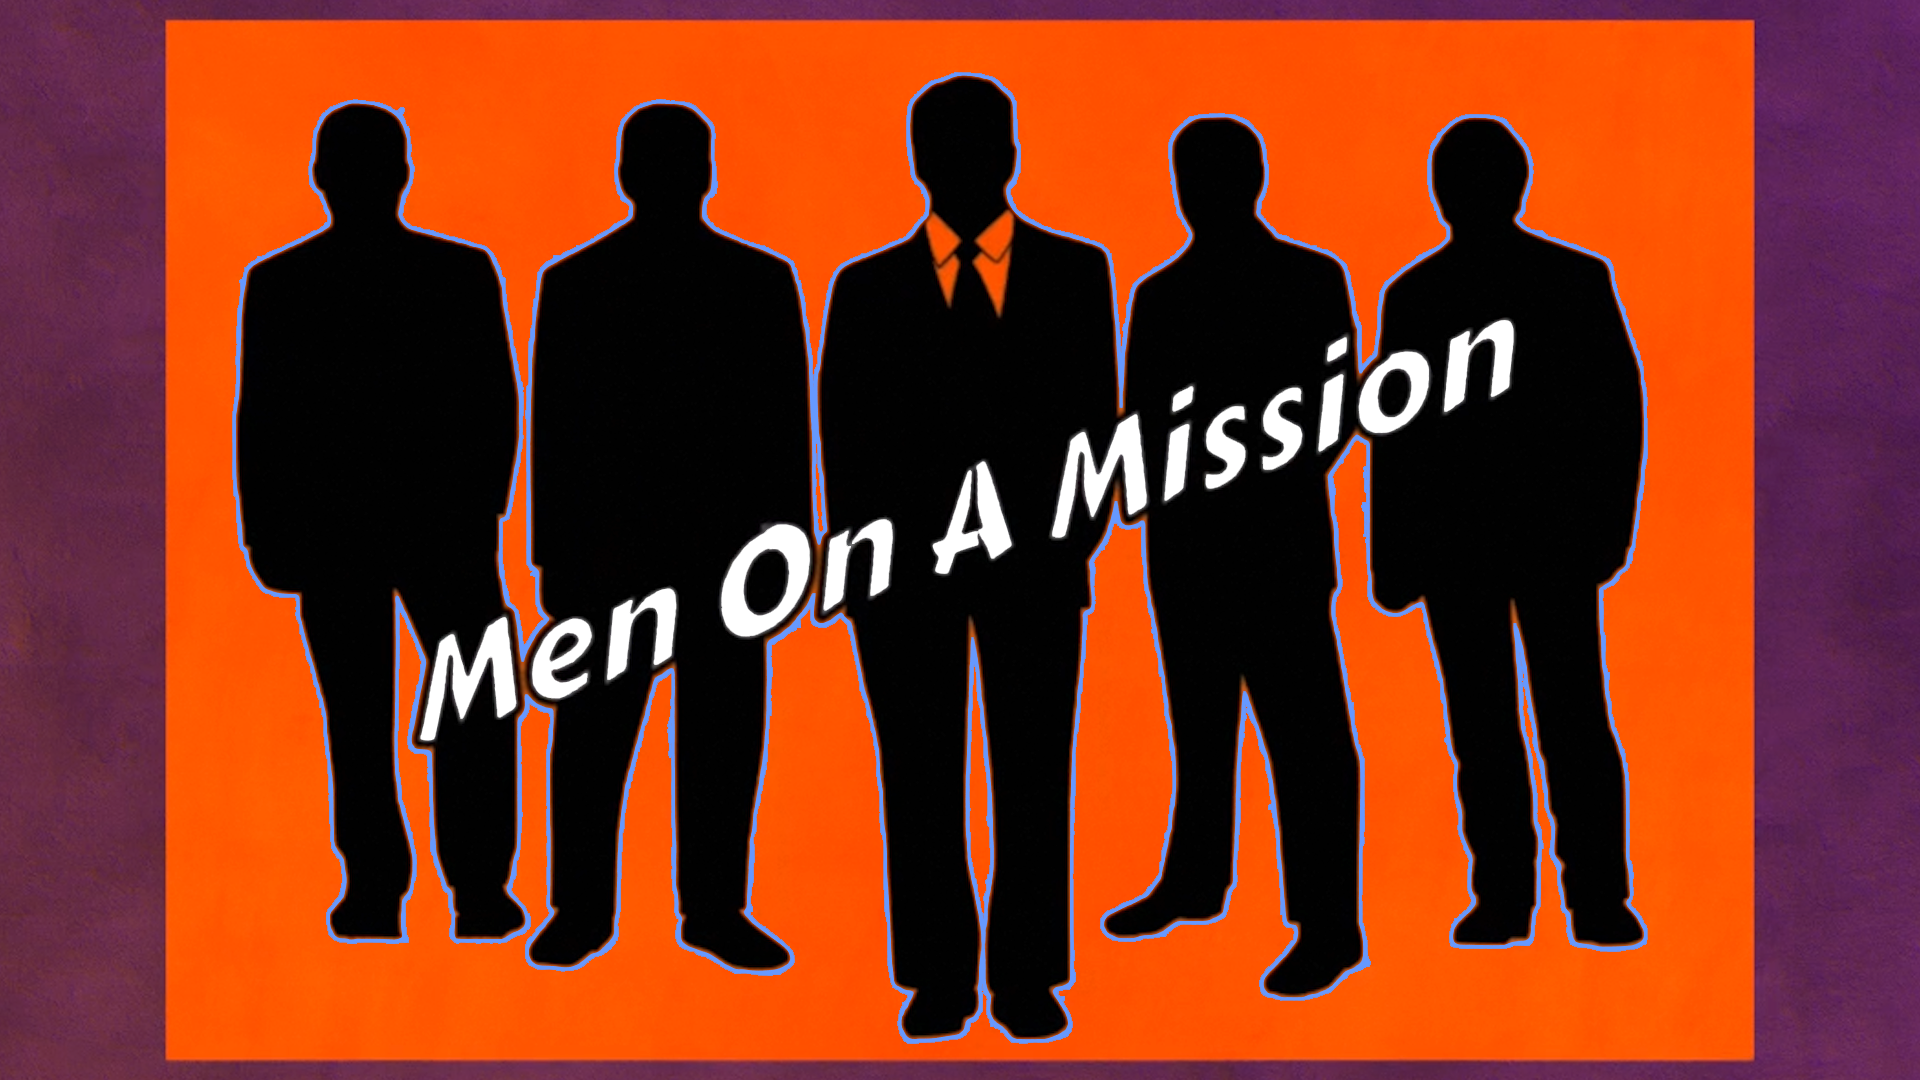 Men on a Mission S2E1